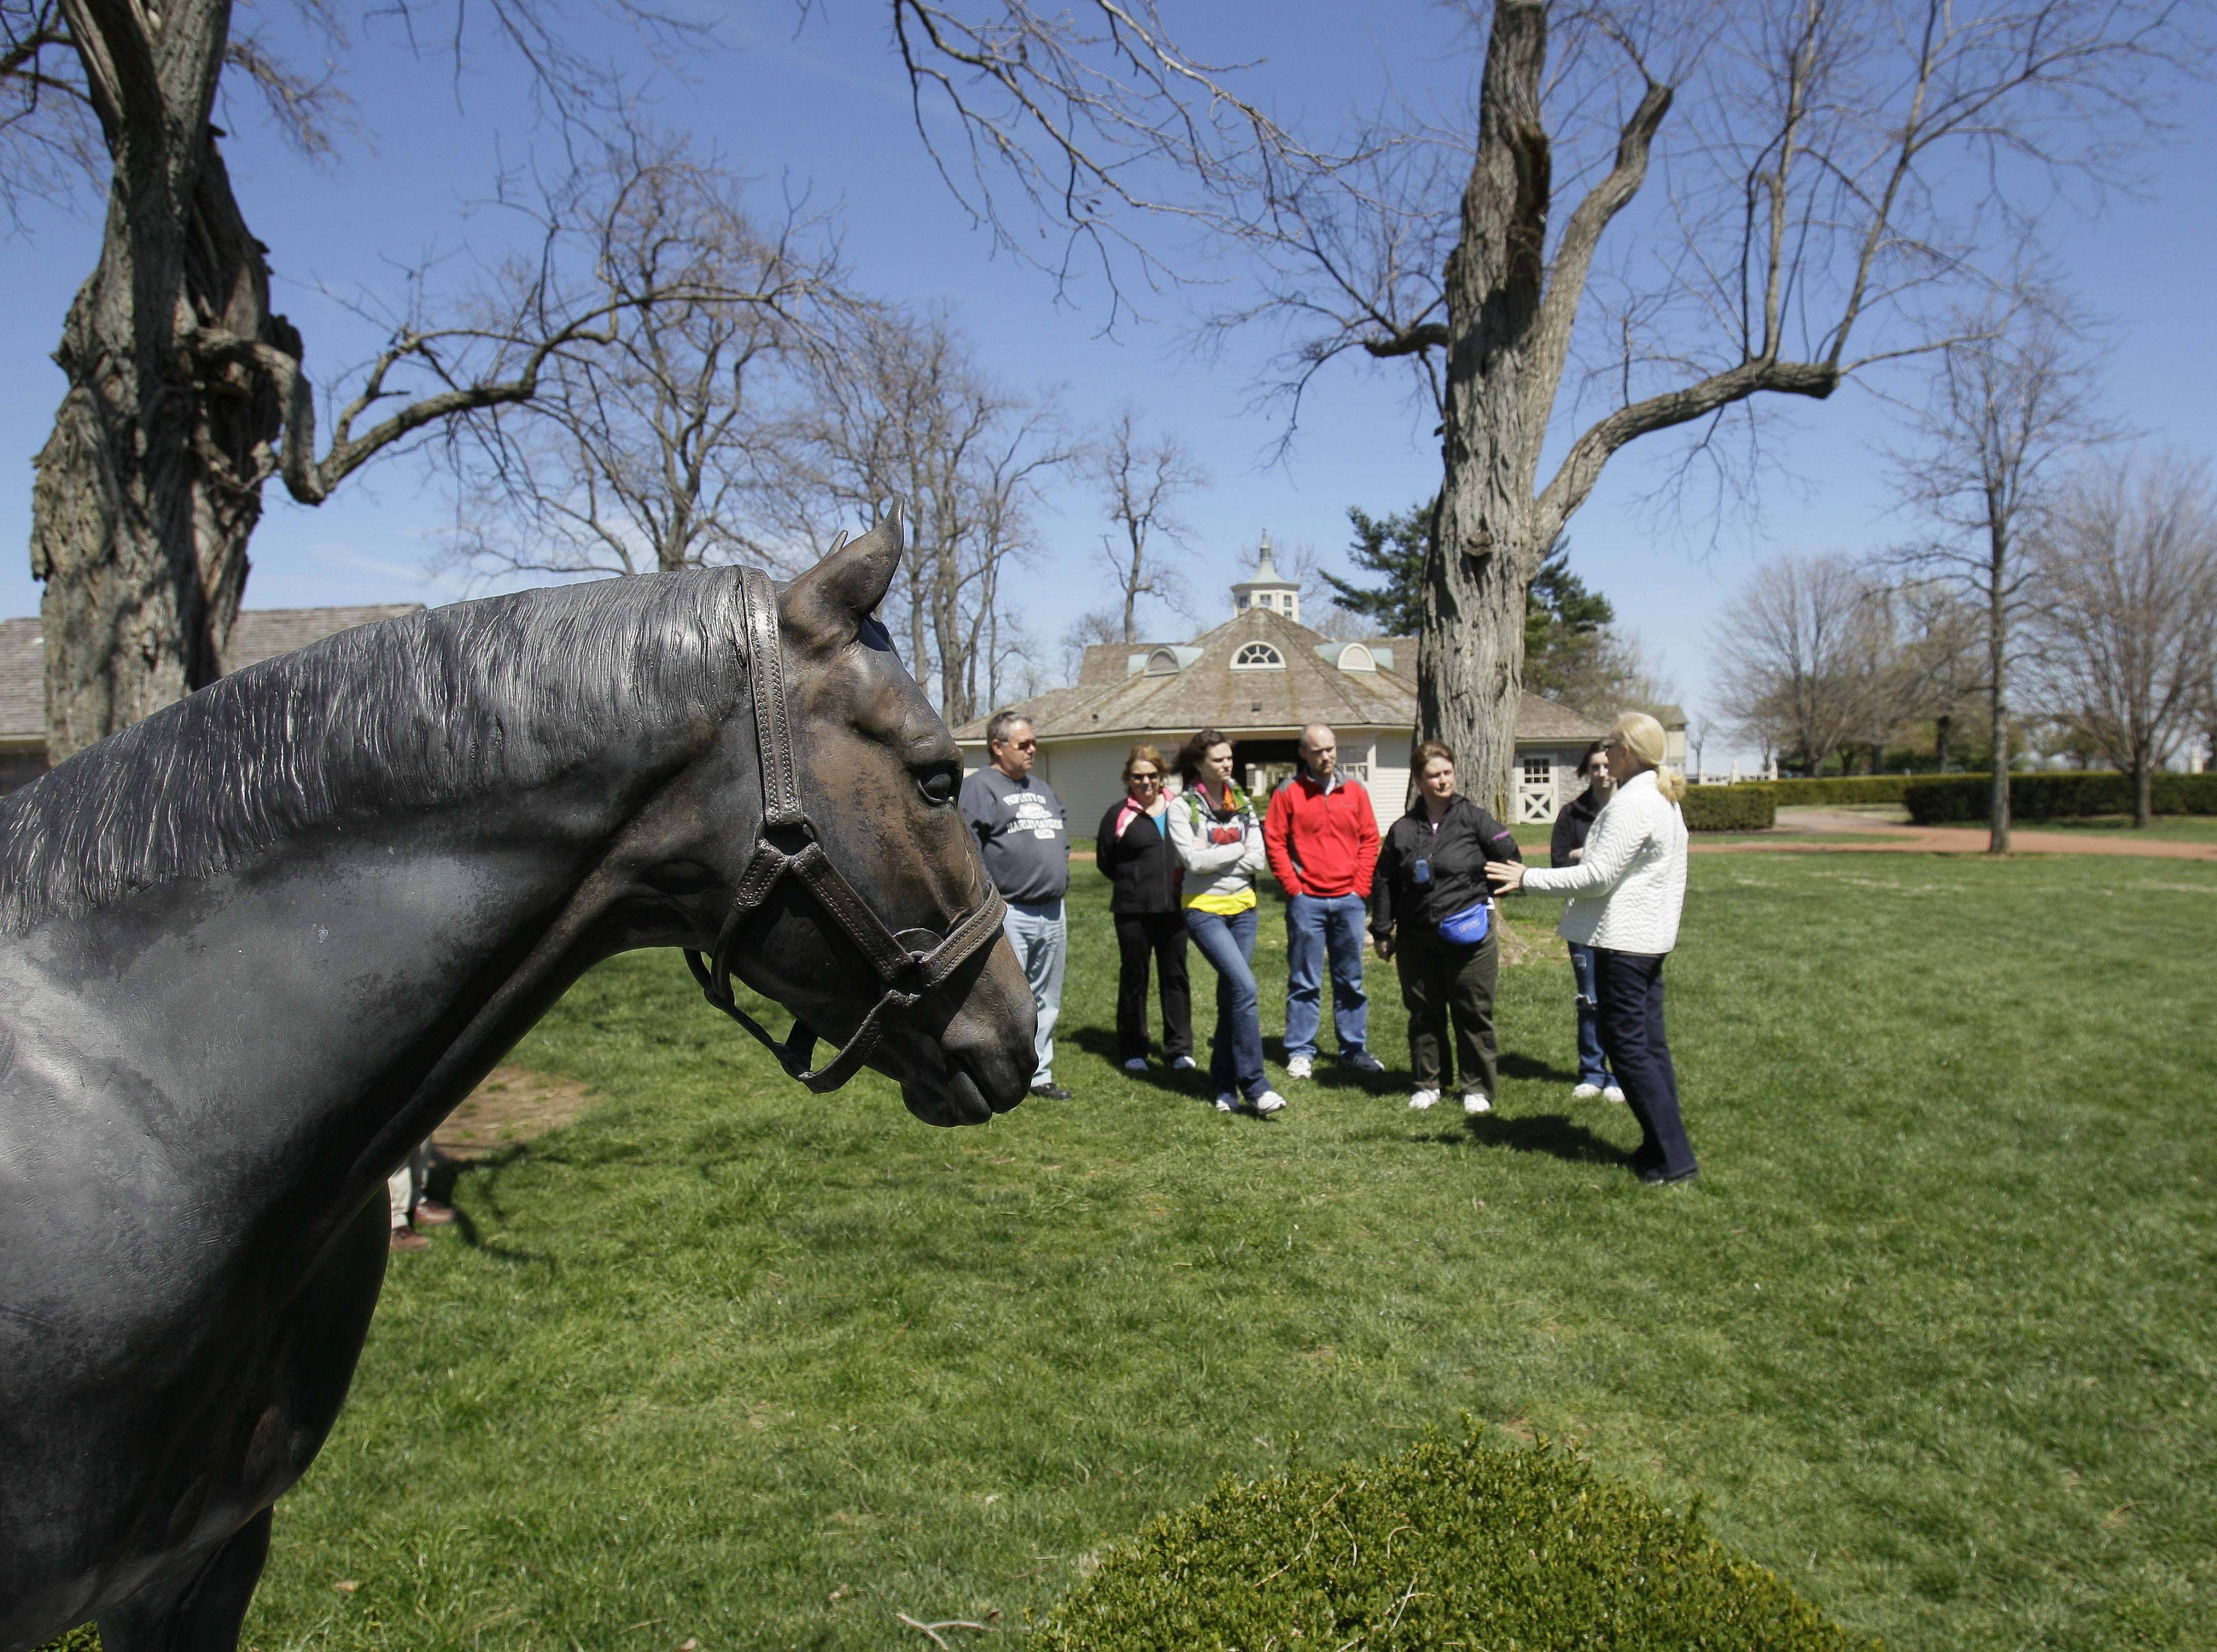 A tour group pauses in front of a statue of the famous thoroughbred Seattle Slew during a tour of Three Chimneys Farm in Midway, Ky.